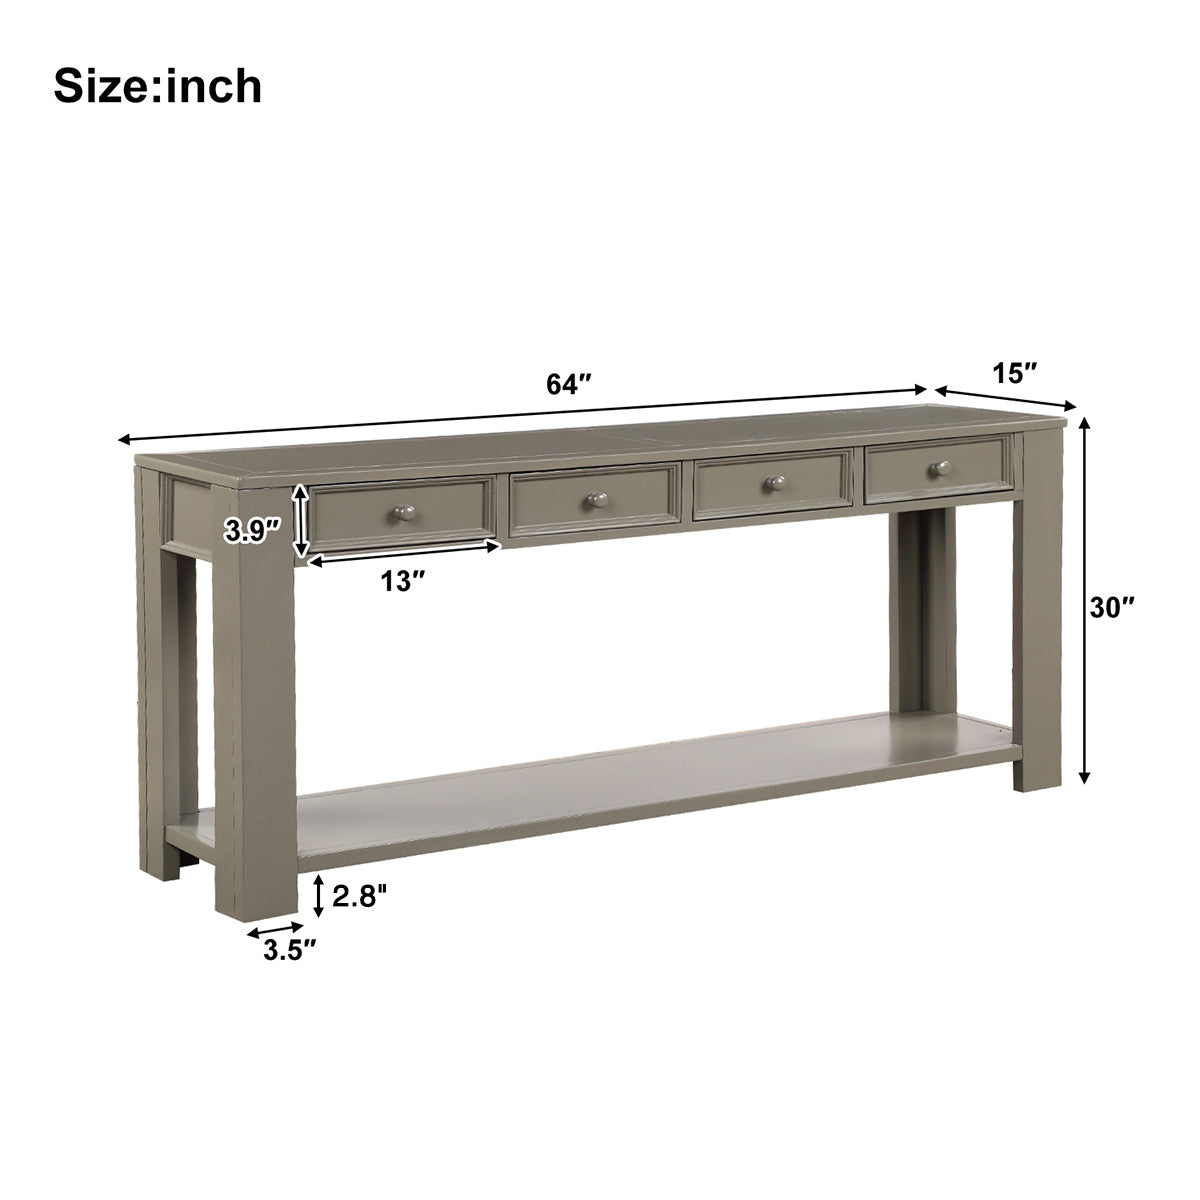 Dim Gray Rectangular Console Table for Entryway Hallway Sofa Table with Storage Drawers and Bottom Shelf BH189615